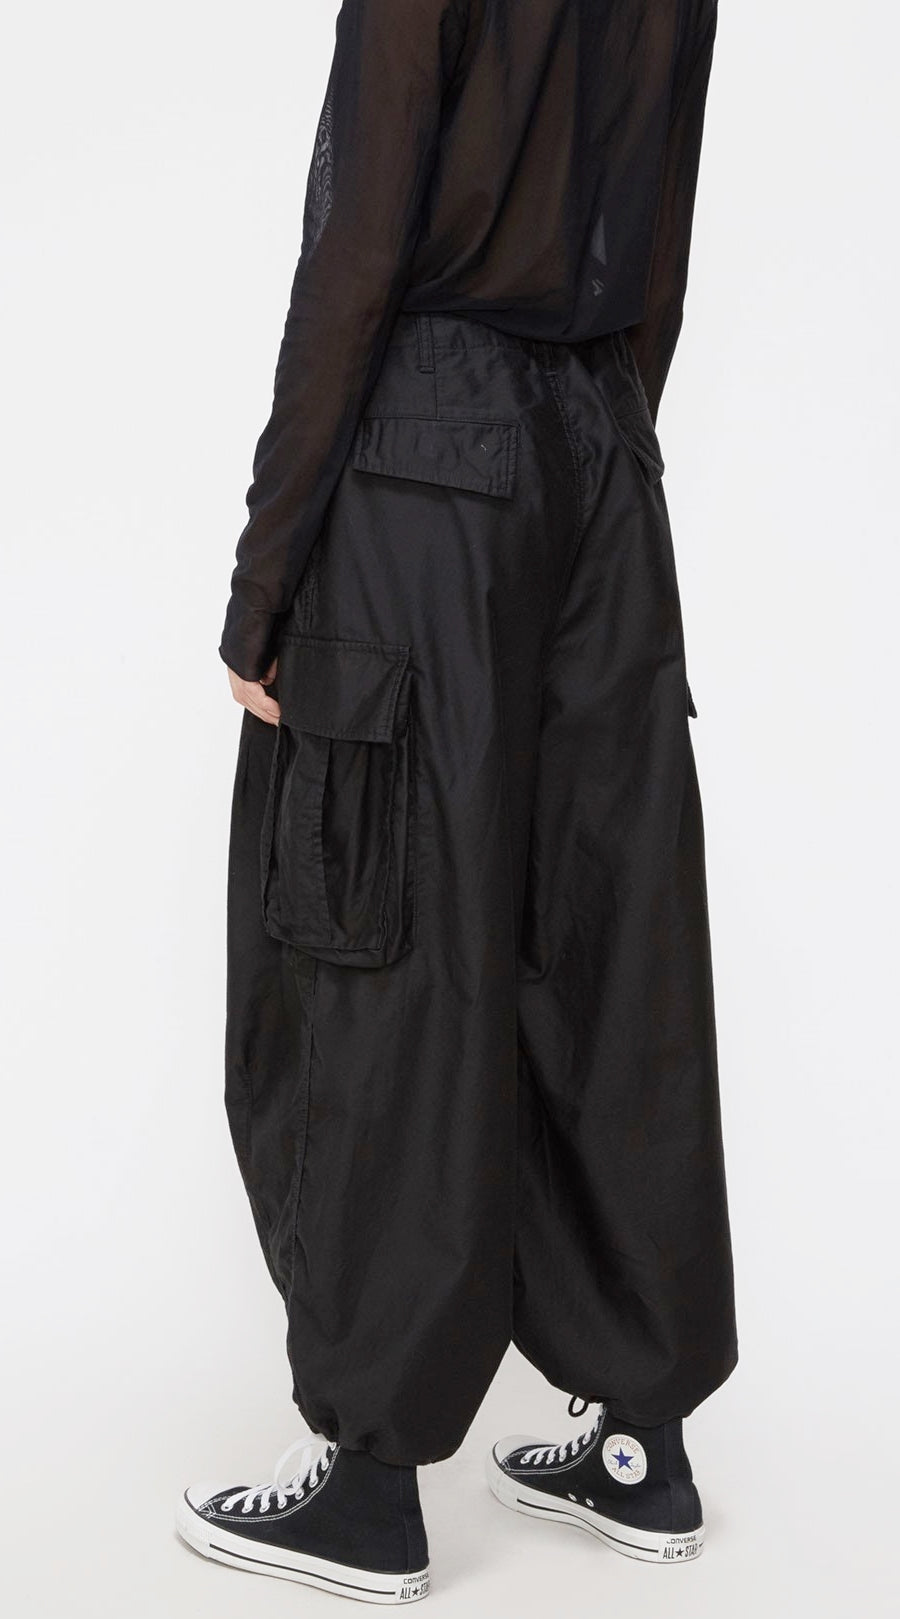 Twill Cargo Pant / Drawstring Adjustment at Waist / Large Patch Pockets /Wide Cropped Leg